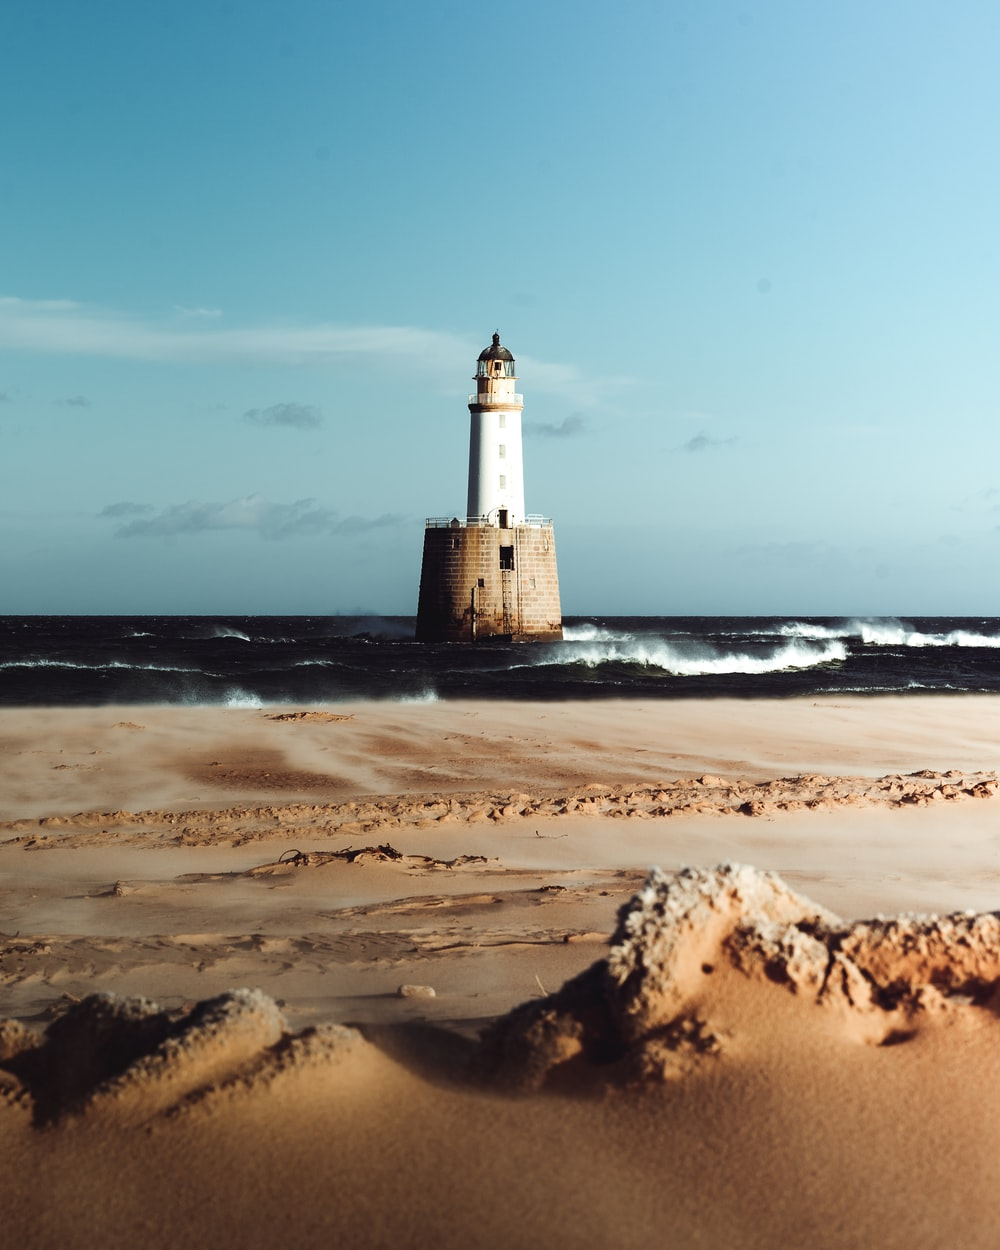 white and black lighthouse on brown sand near body of water during daytime